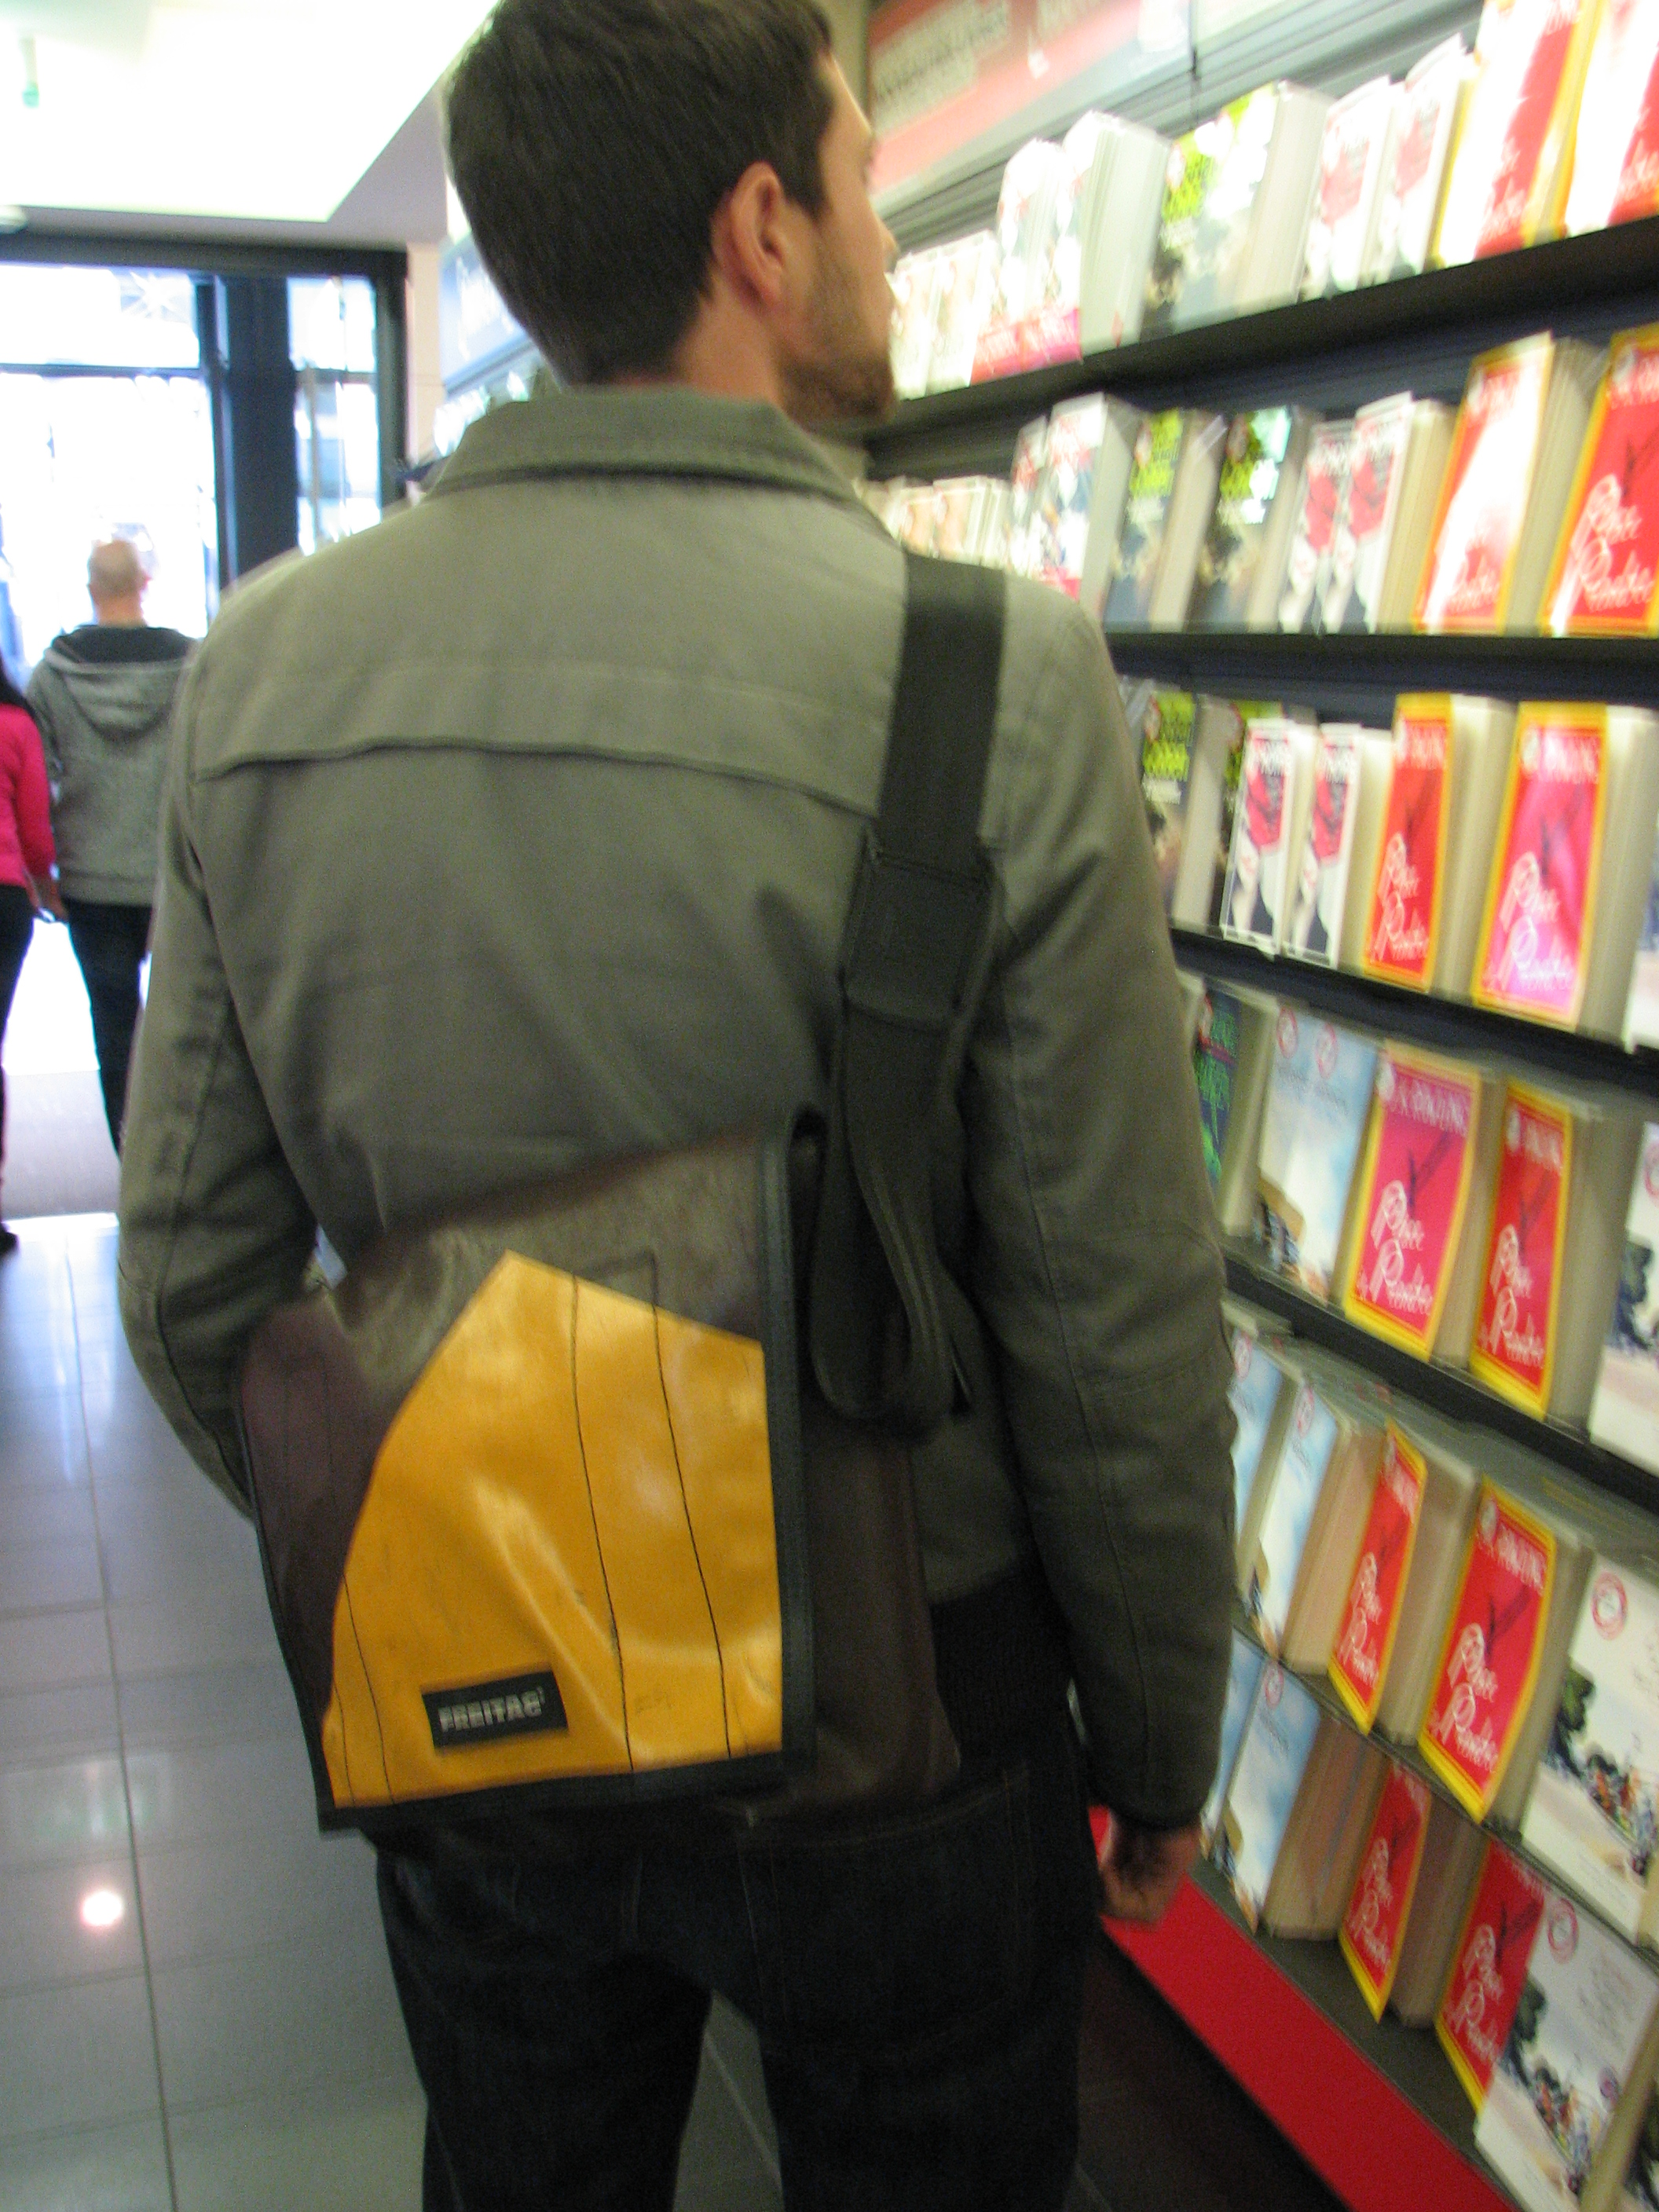 742873cd779c Freitag and the messenger bag generation